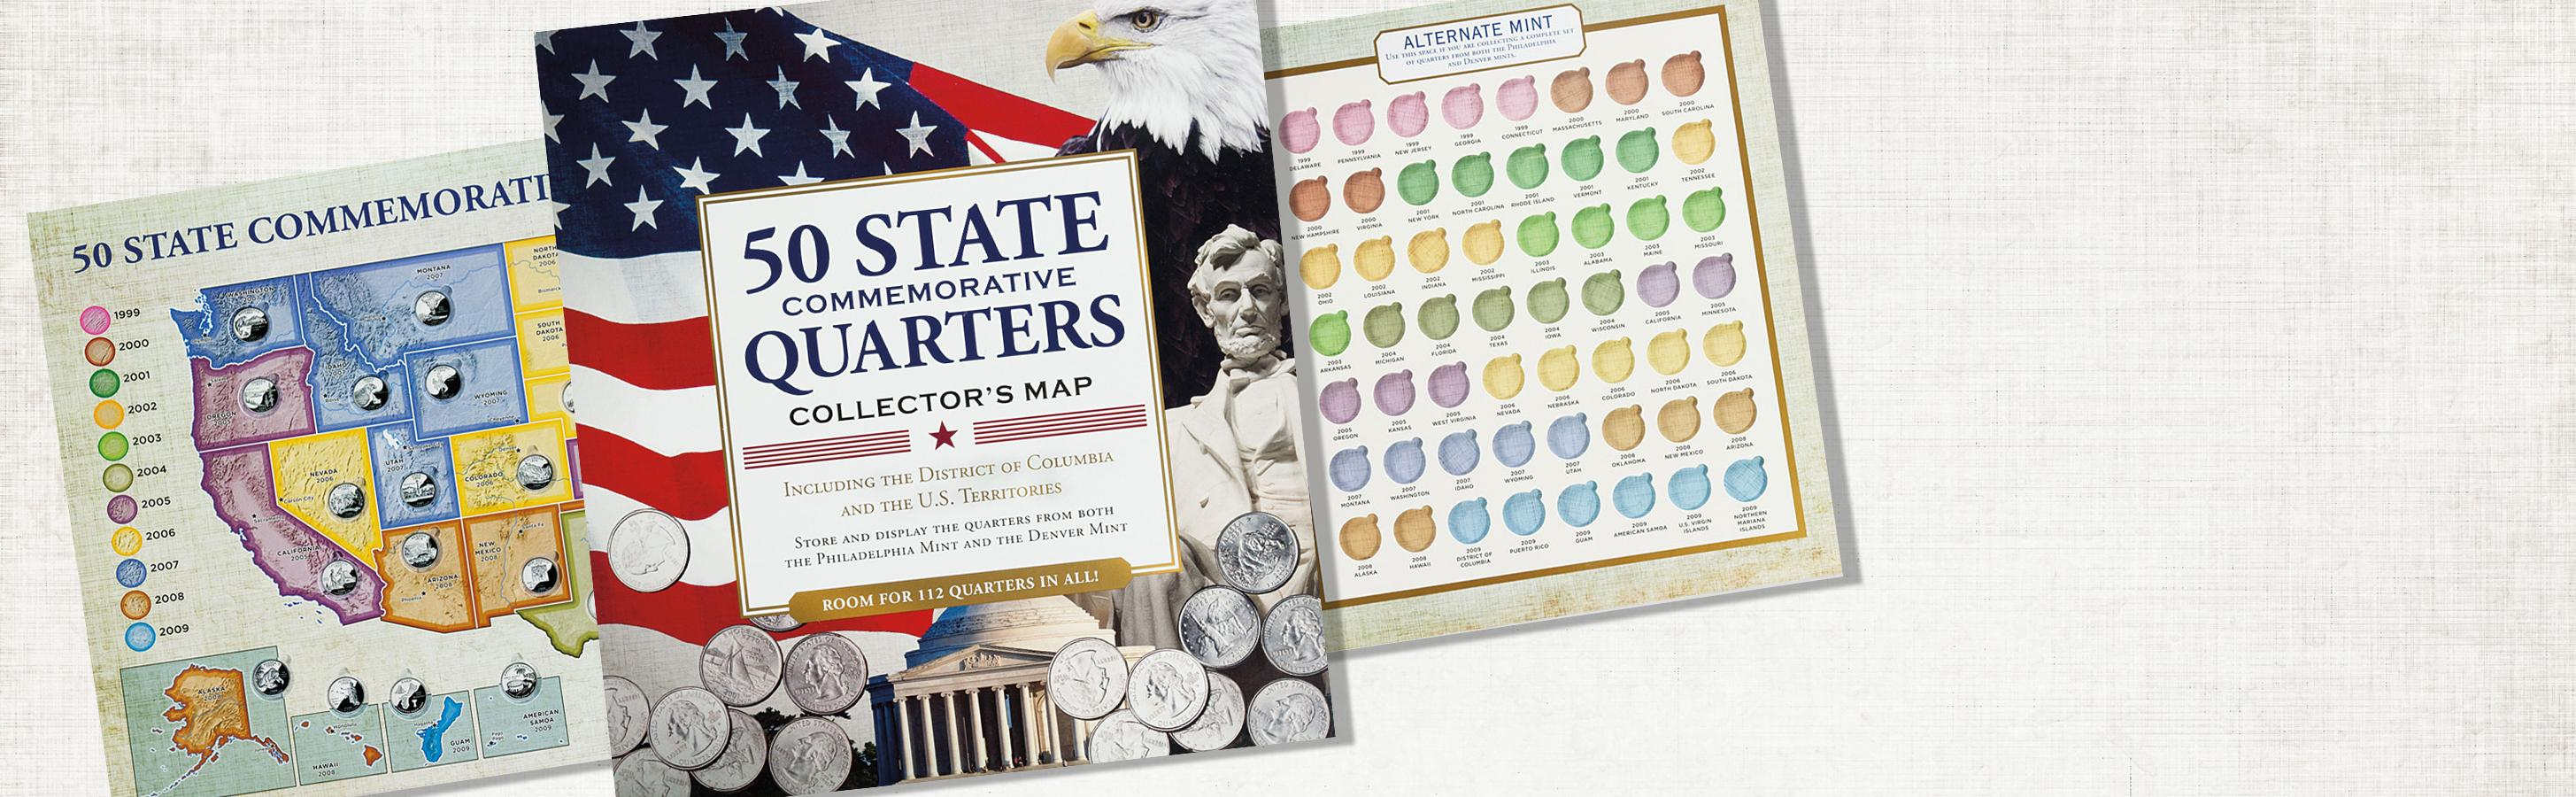 Amazoncom State Commemorative Quarters Collectors Map - Us map for collecting quarters